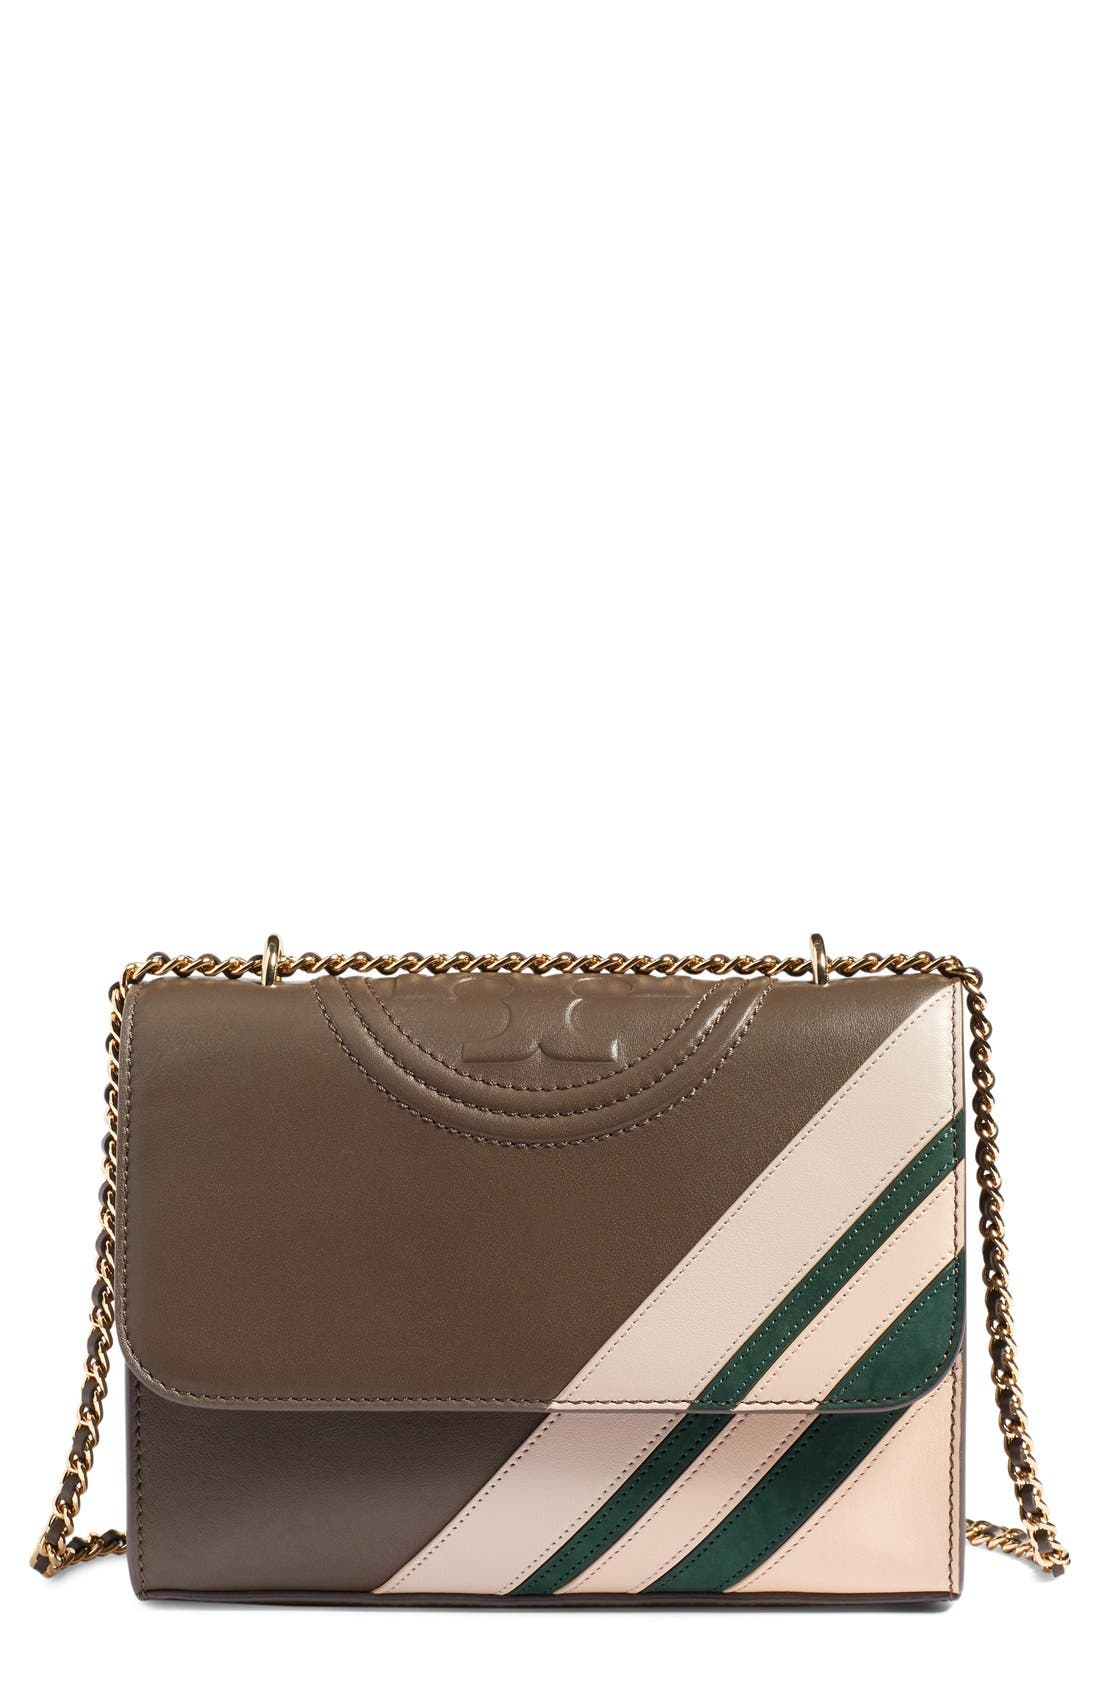 Main Image - Tory Burch 'Fleming Stripe' Convertible Crossbody Bag